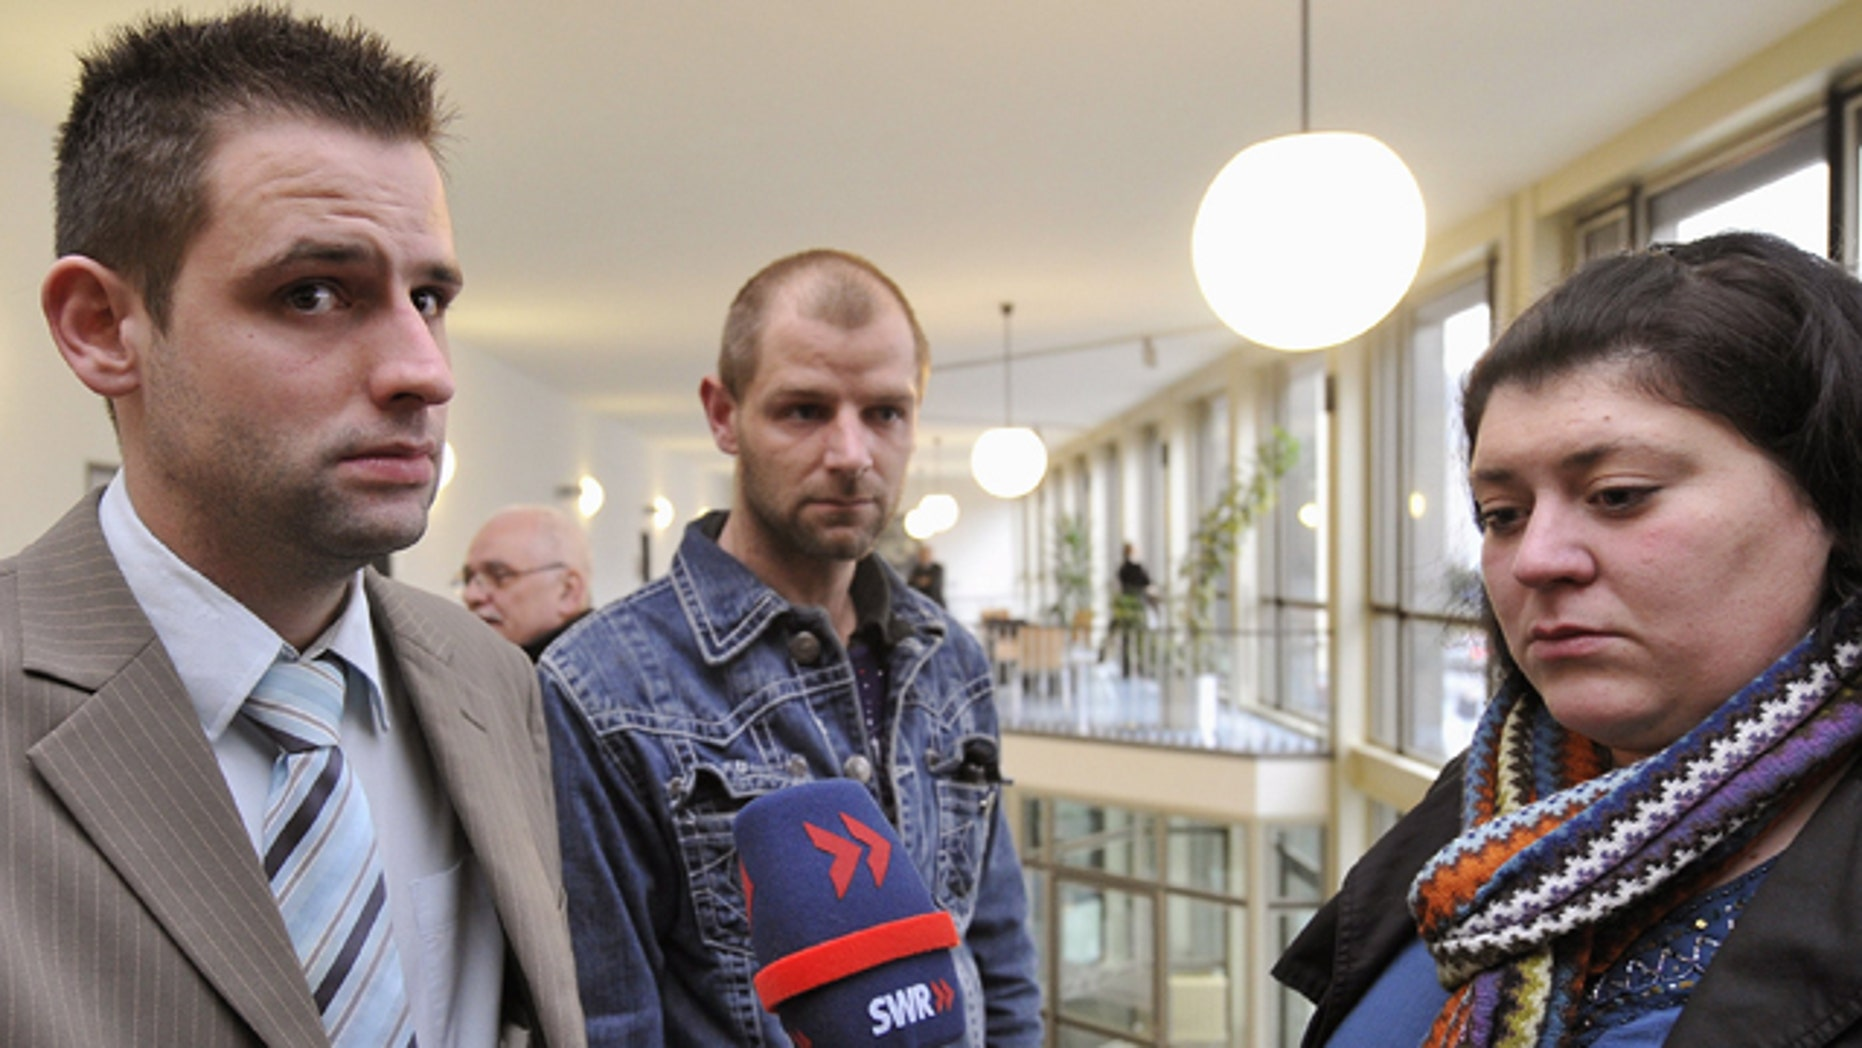 Feb. 15: Bjoern B., left, and Markus S., both stepsons of Detlef S., and B.'s wife Nadja, give interviews outside the courtroom in the regional court in Koblenz, western Germany.